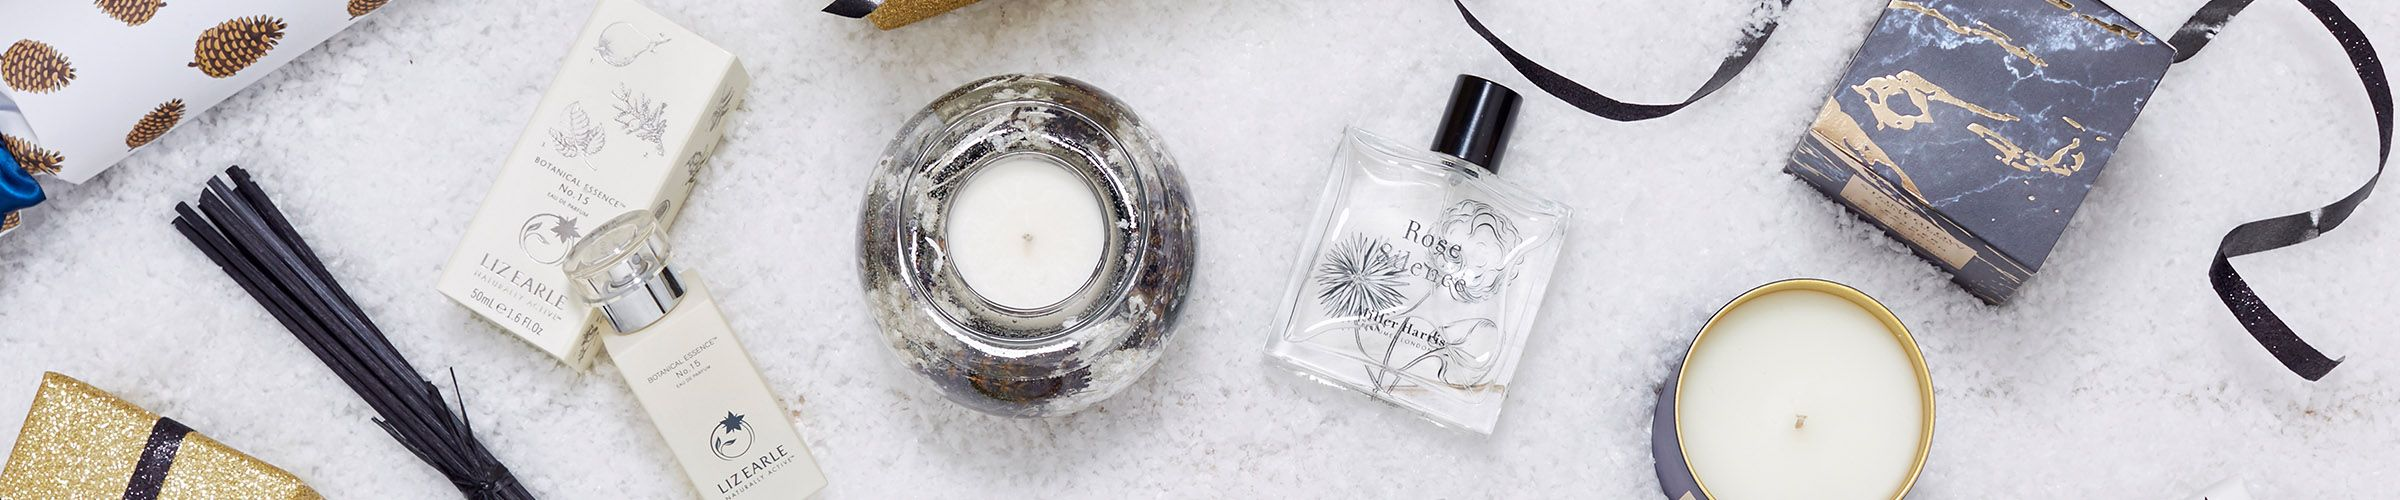 Gifts for scent lovers